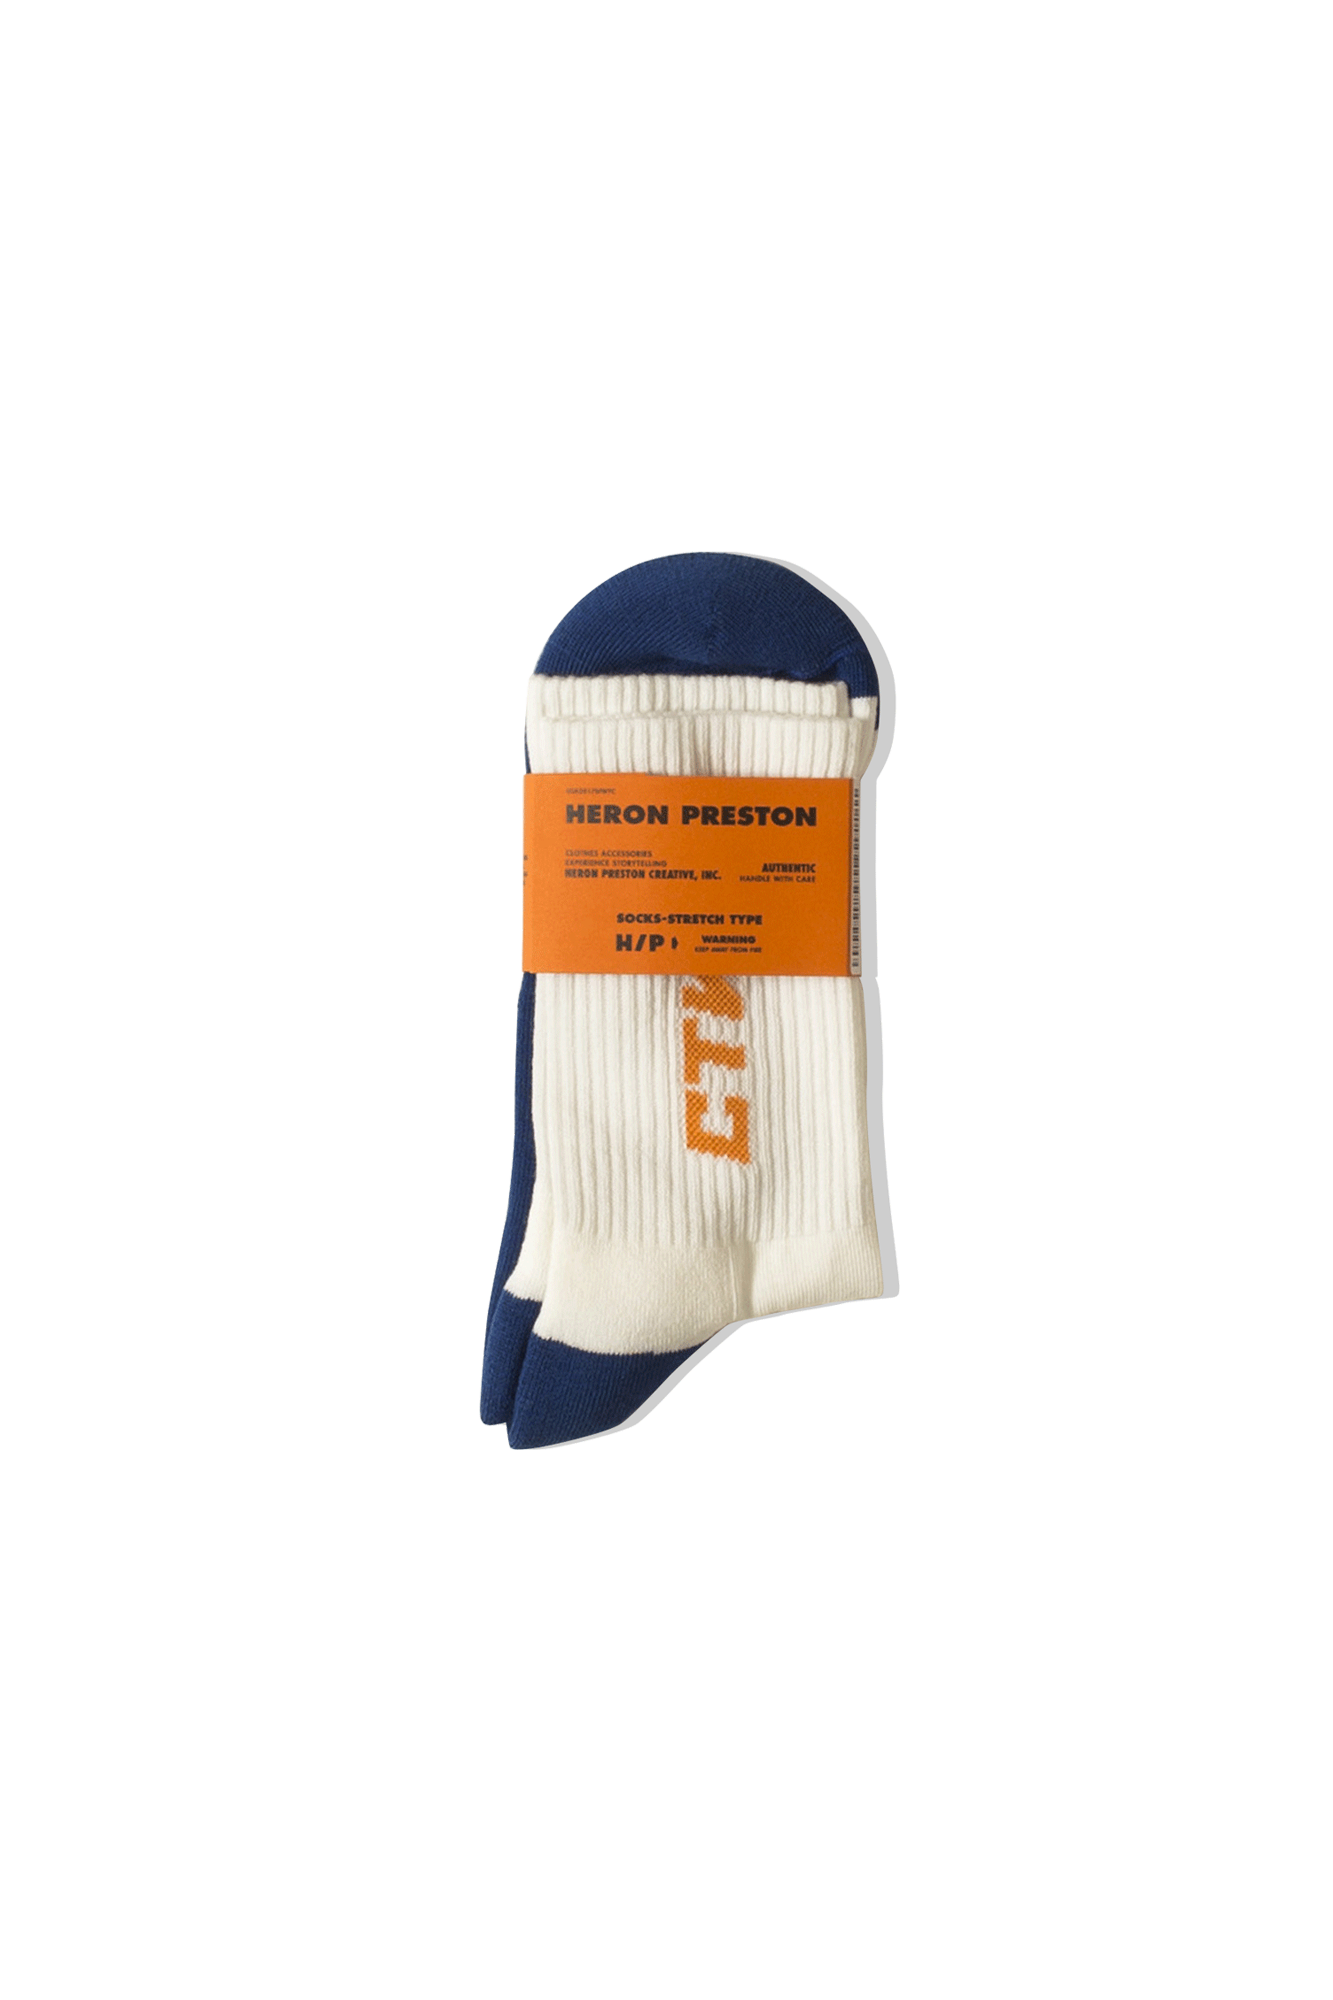 Heron Preston Socks CTNMB Long Socks Blue HMRA002F19#7690223019#BLU#S - One Block Down